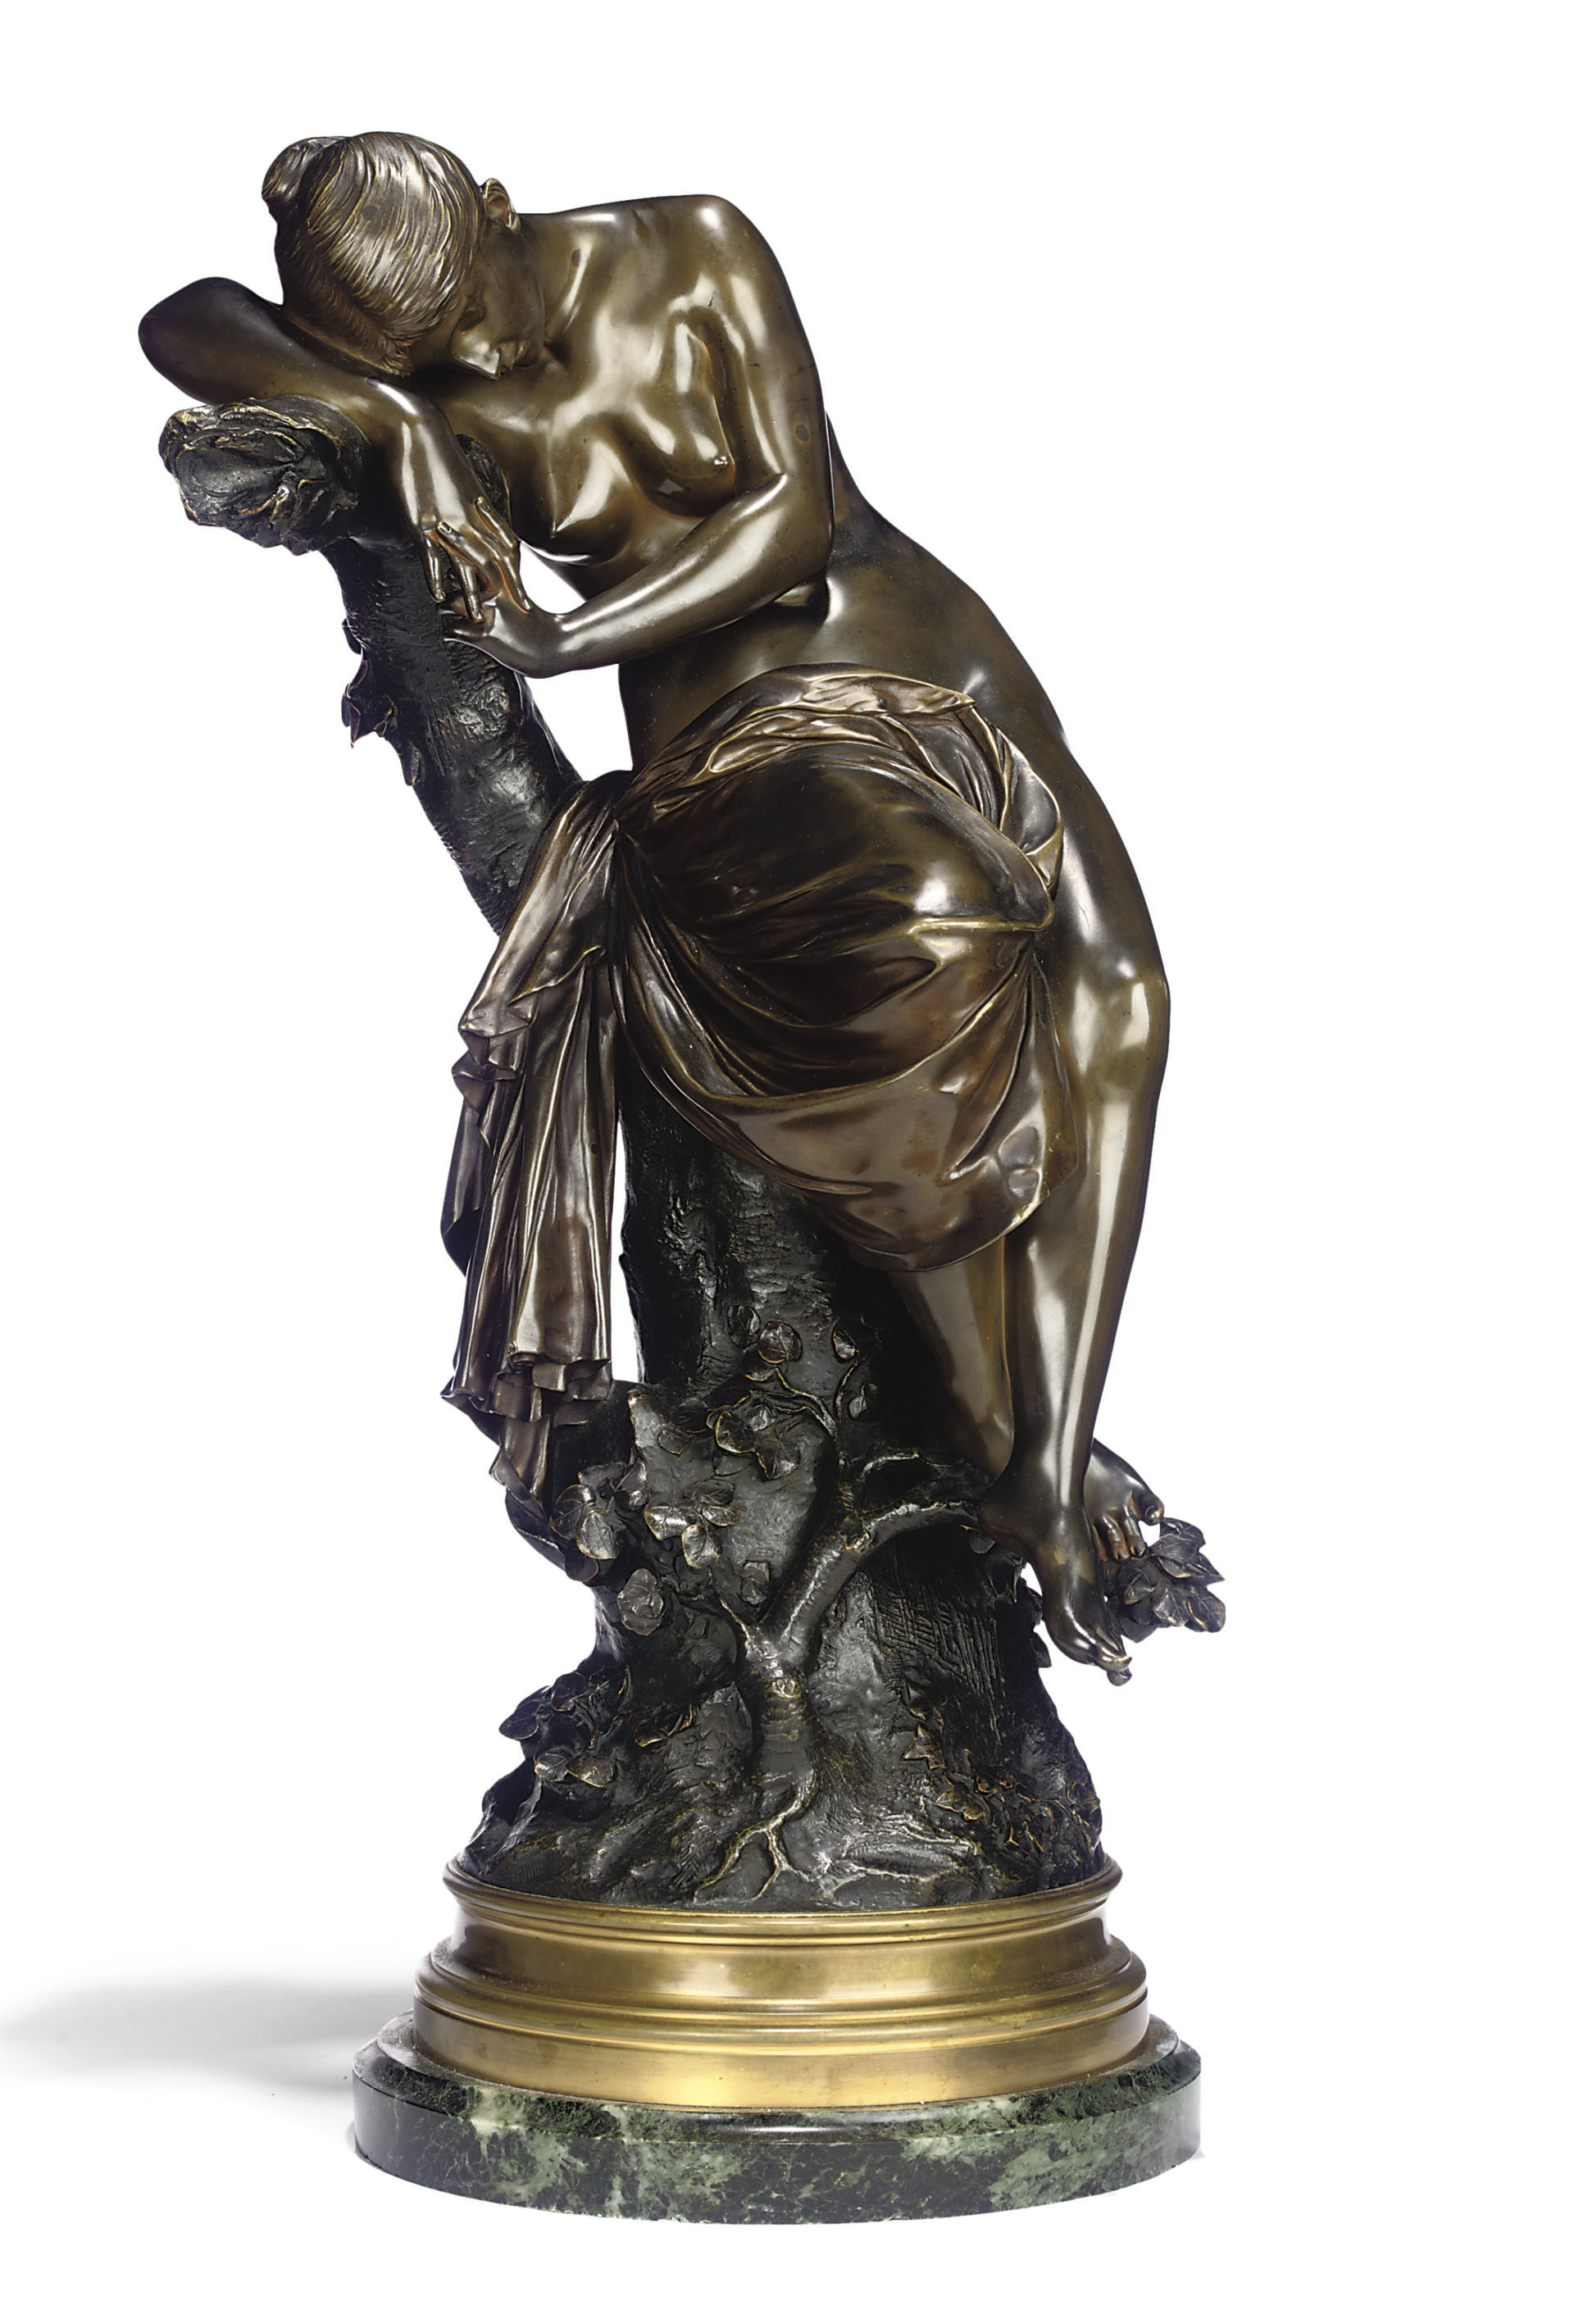 A FRENCH BRONZE FIGURE OF A SLEEPING NYMPH